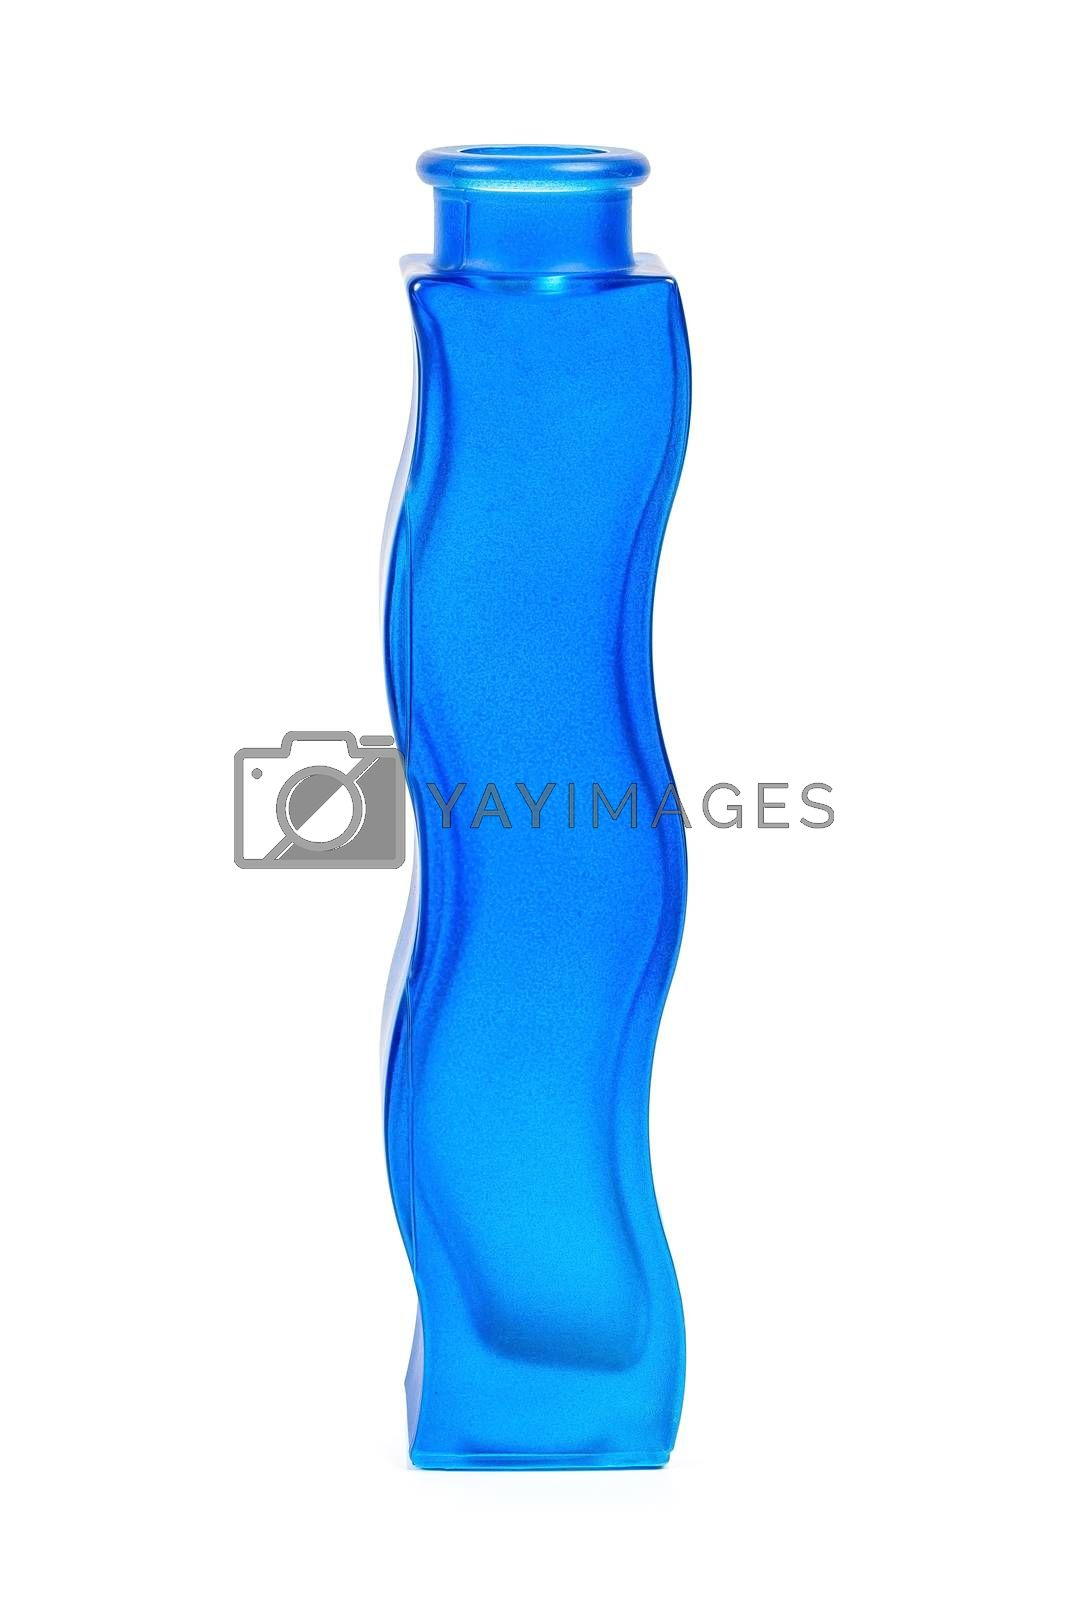 Royalty free image of Decorative empty glass blue flower vase on white background by mkos83